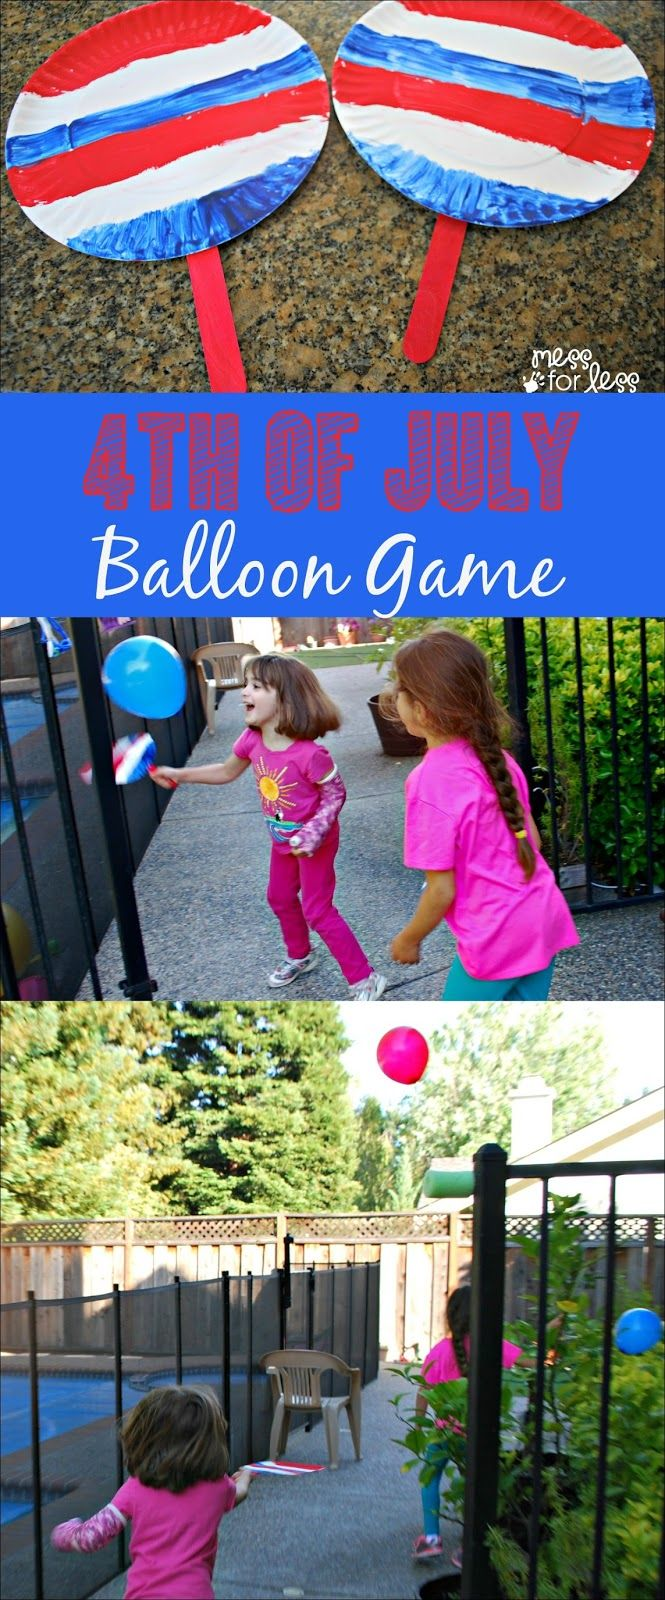 DIY Craft: Patriotic Games for Kids - find out how to make this DIY balloon game that the kids can enjoy on the 4th of July. This is a fun 4th of July craft and 4th of July activity.